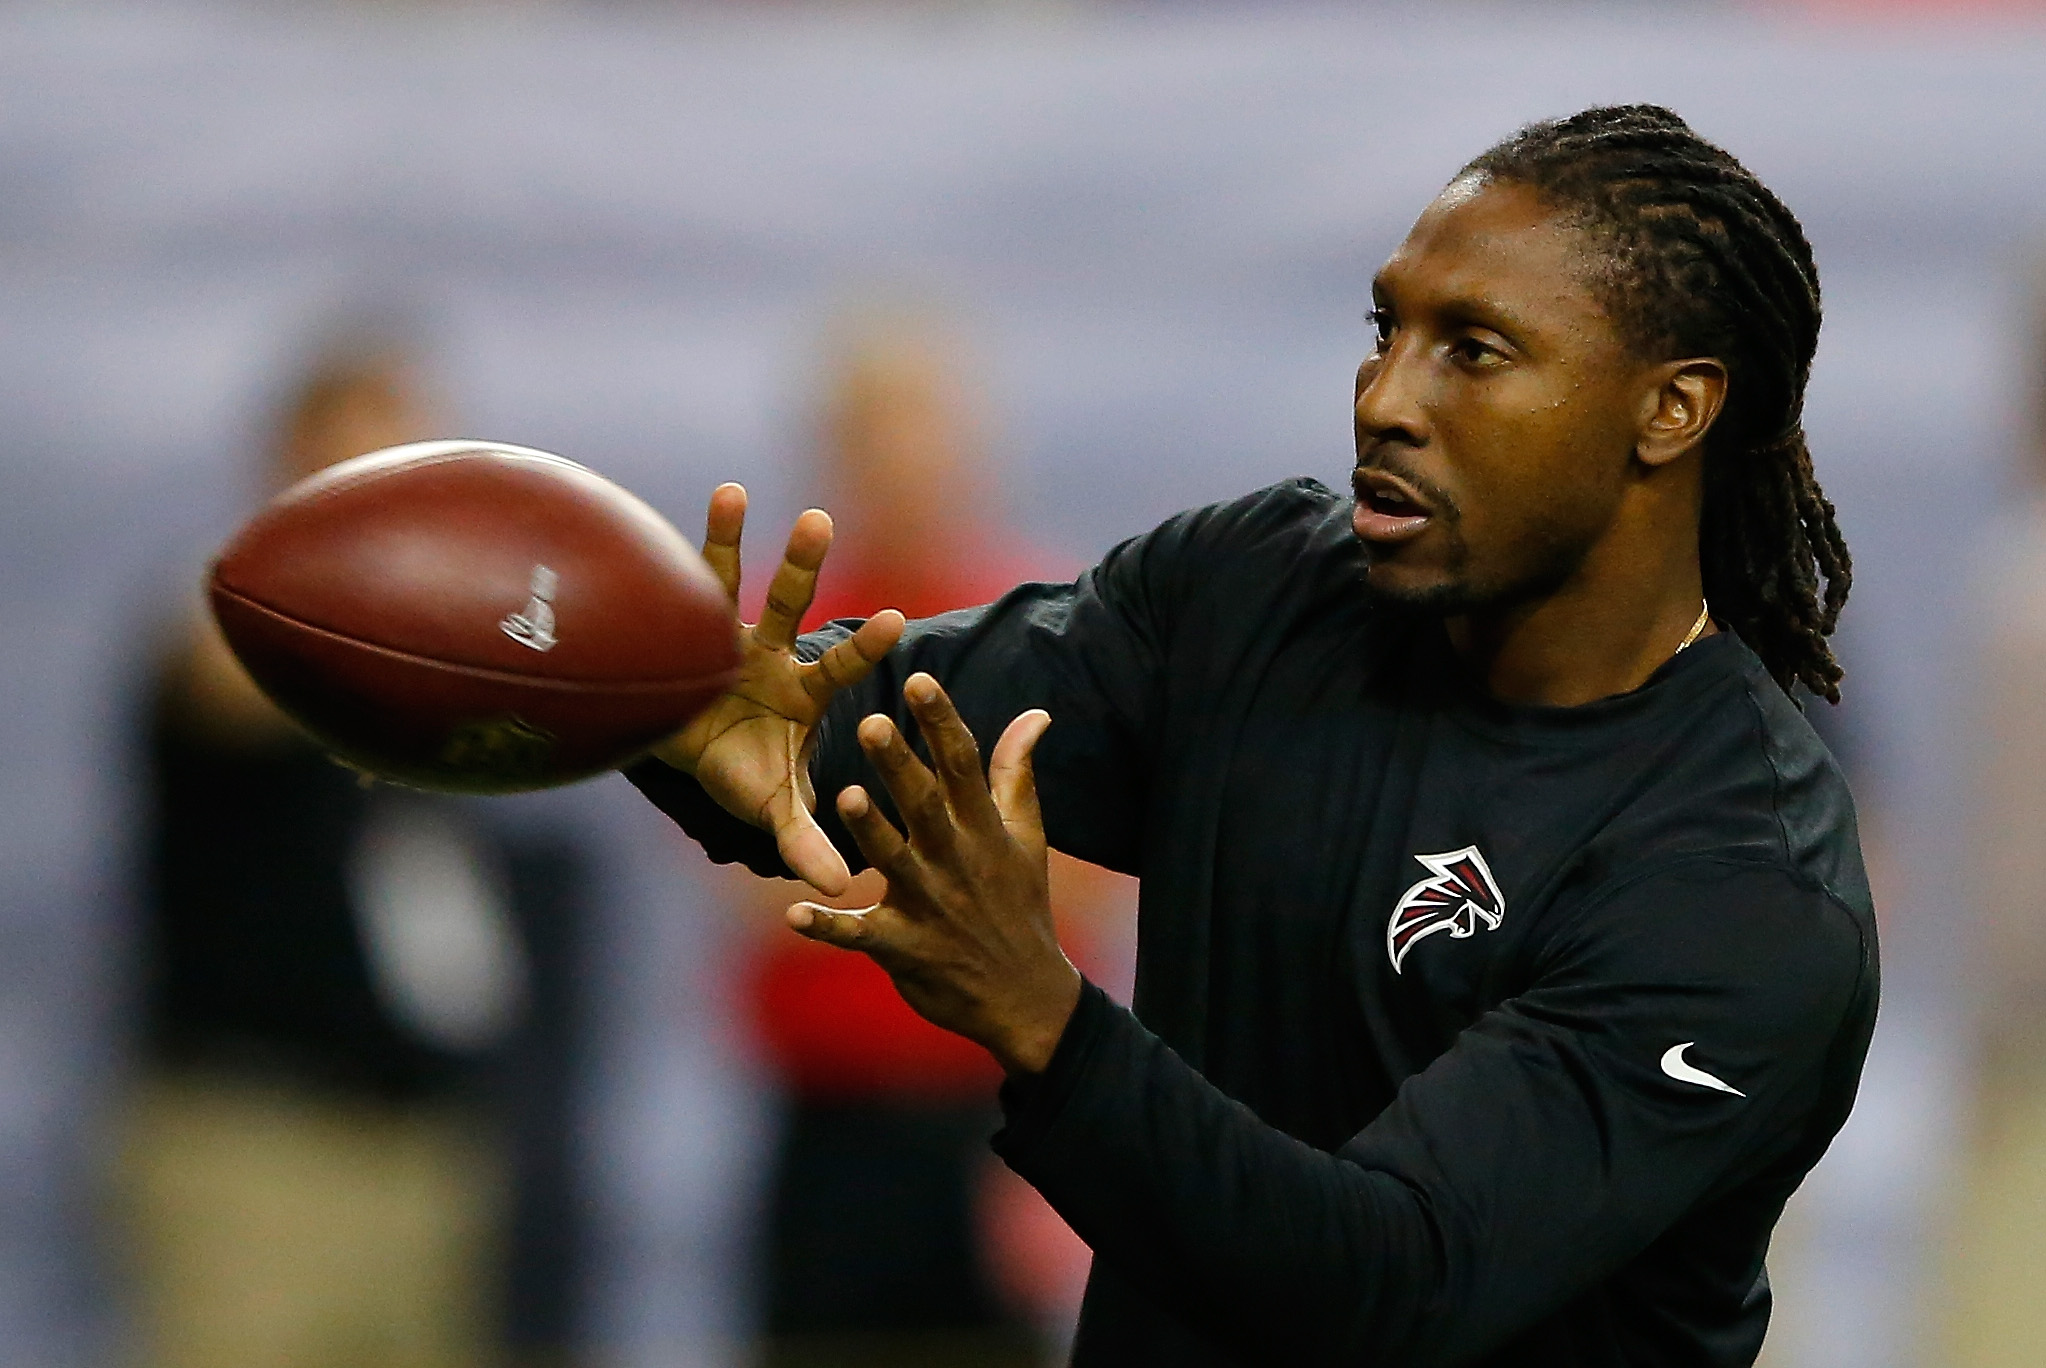 Roddy White Lost $10,000 by Showing Support for Michael Vick